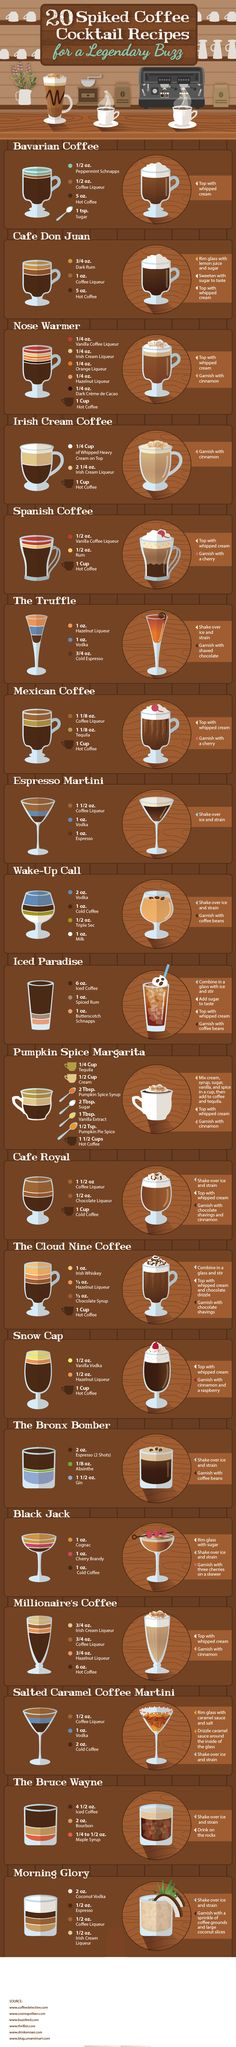 Check out this blog post for some FABULOUS Coffee Cocktails!! PERFECT for these frigid winter evenings! Be sure to share with your friends! Maybe they'll make you one! https://theshelvinshop.com/blogs/news/one-just-for-fun-coffeeandcocktails #coffeesipsandsarcasm #sipsandsarcasm #coffee #coffeelove #caffeine #gourmet #coffeelovers #considercoffee #l4l